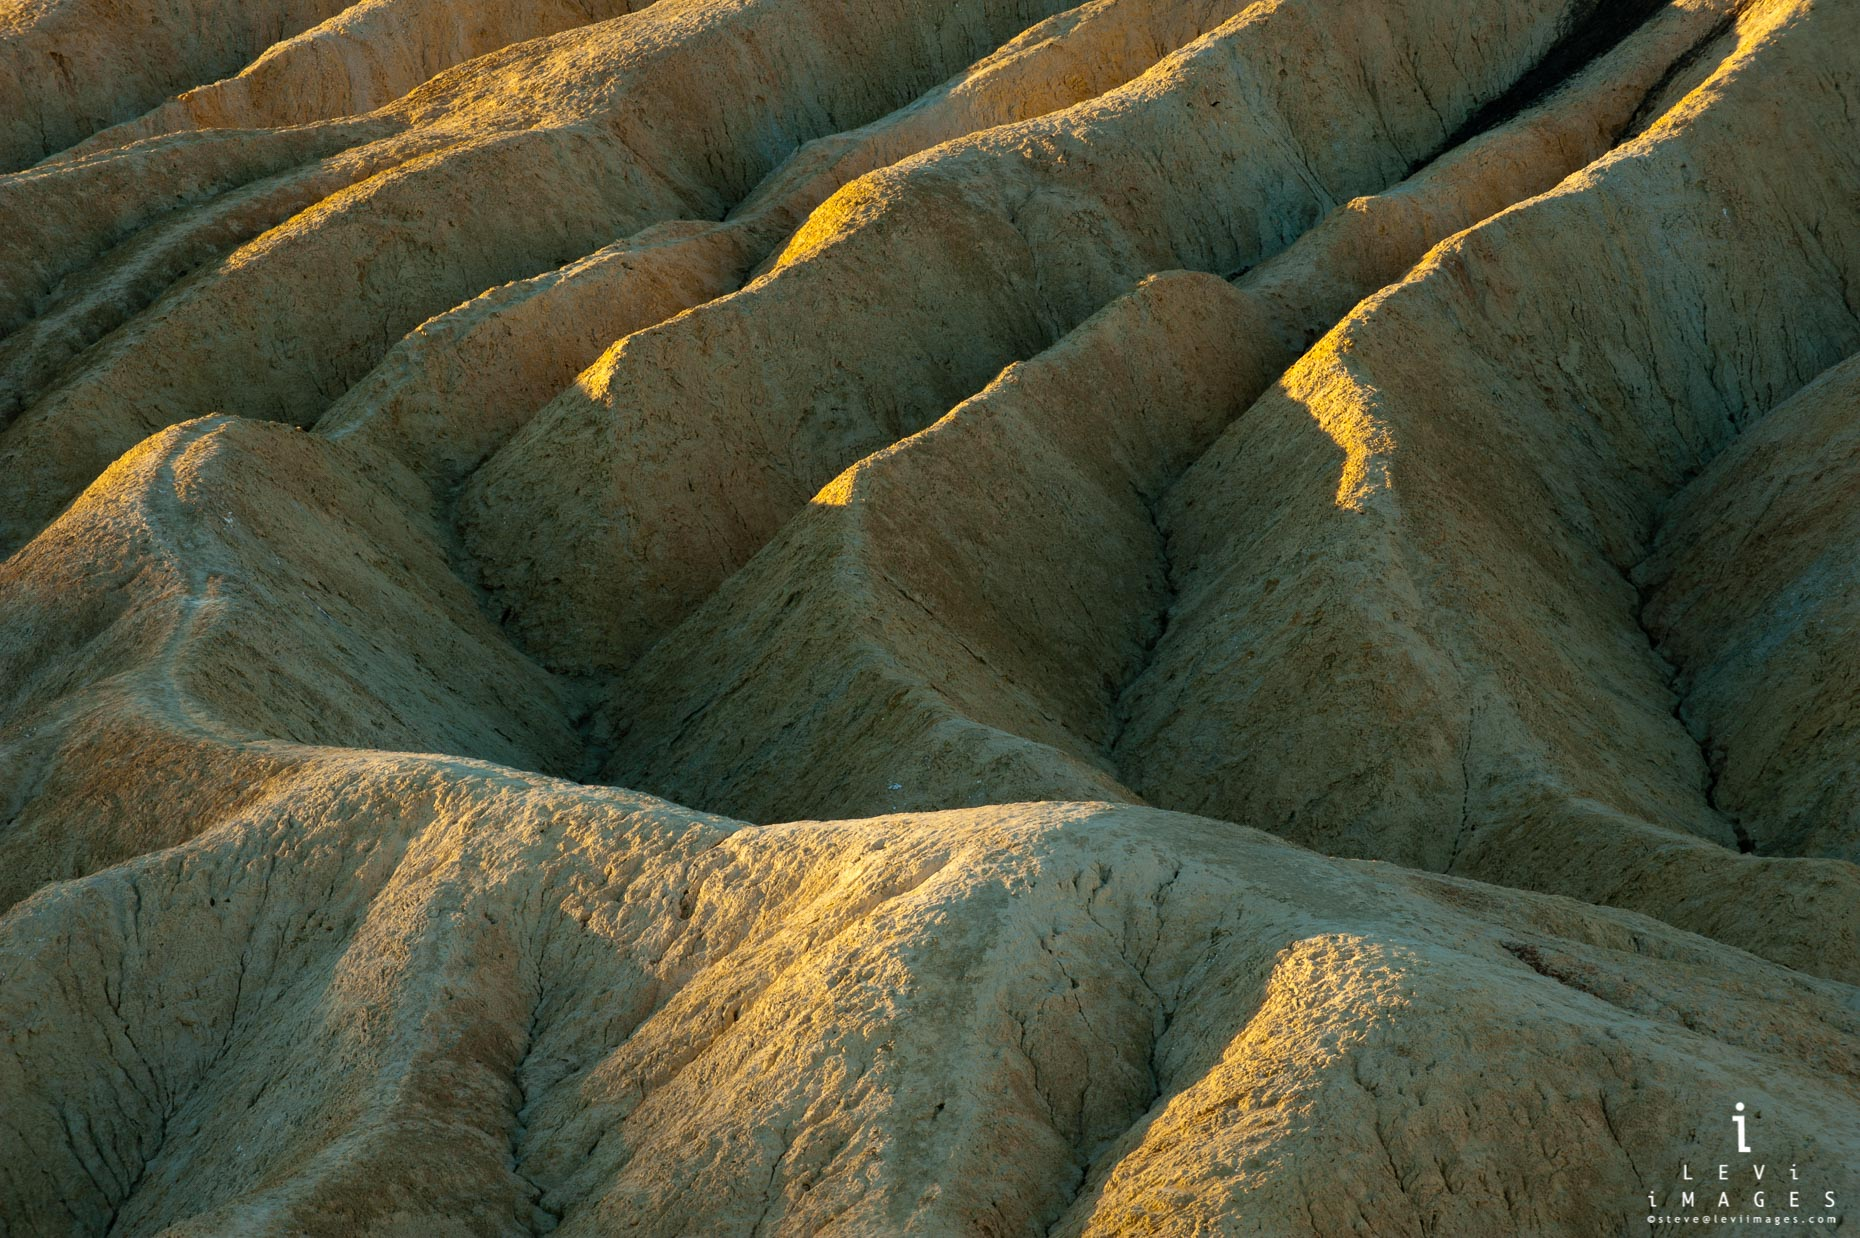 The trail. Death Valley abstract. Zabriski Point, California